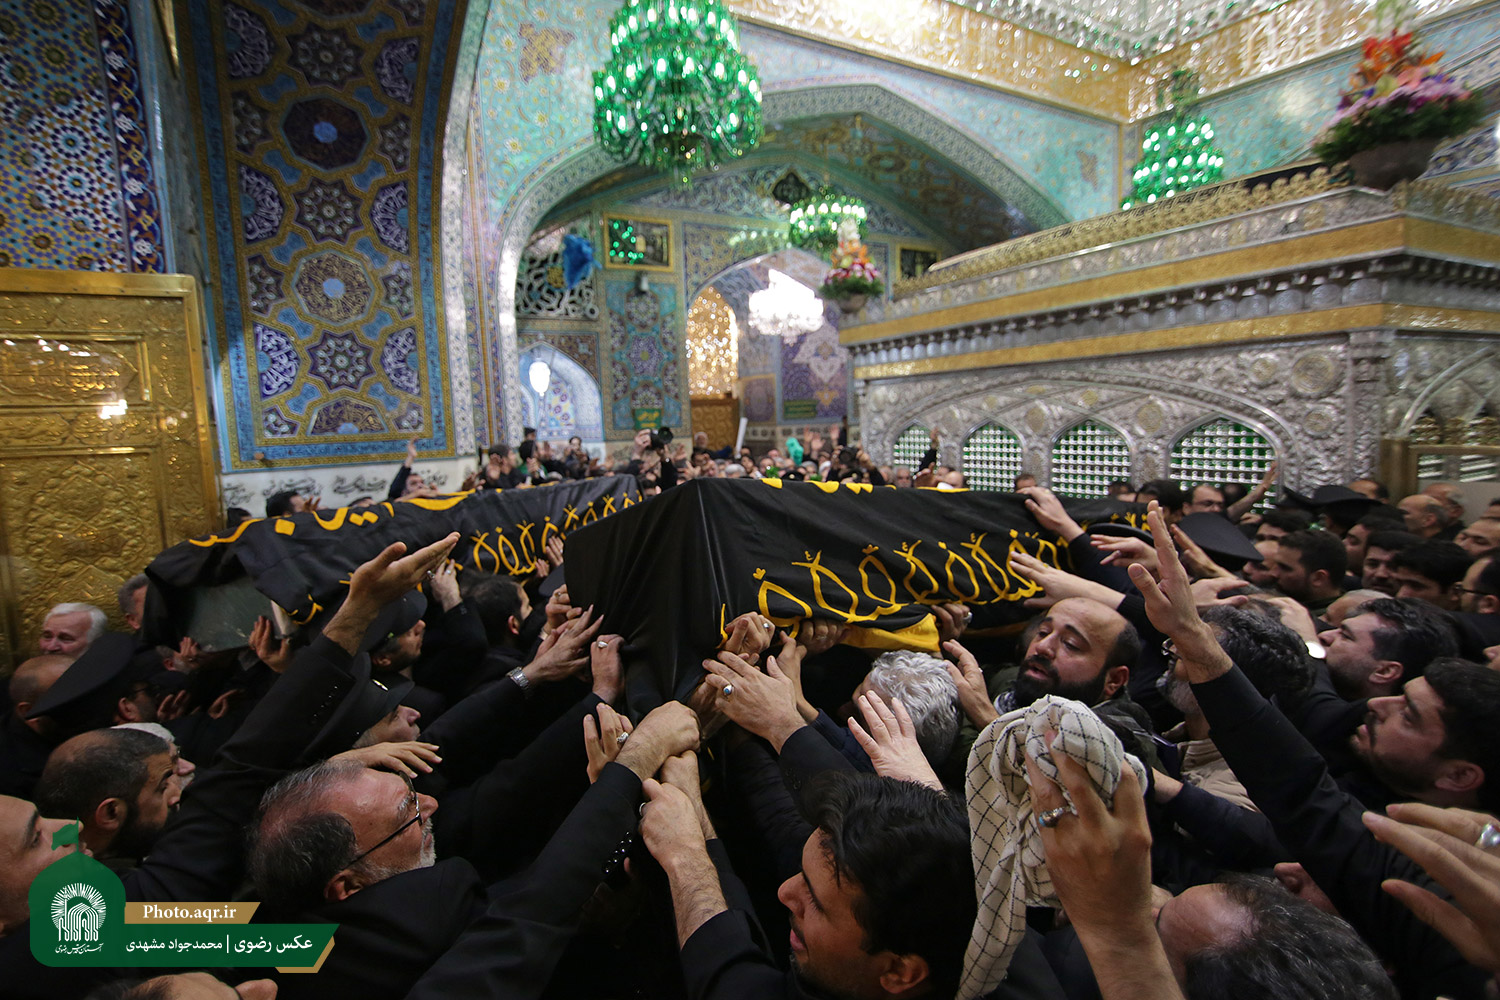 Funeral ceremony of the martyr Major-Gen. Soleimani and martyrs of the Resistance Front in the holy shrine of Imam Reza (AS)